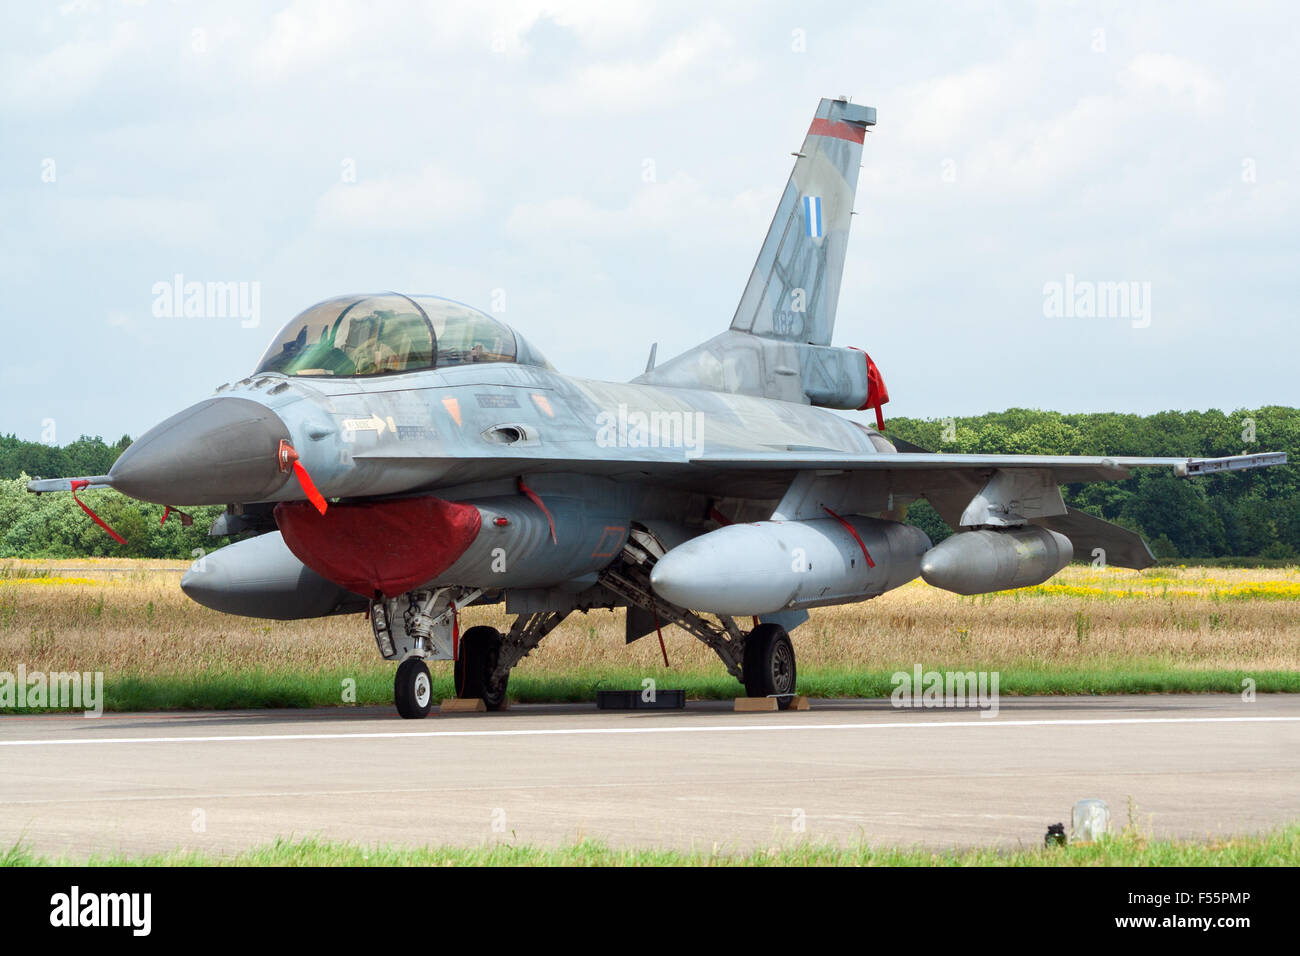 Greek Air Force F-16D on display at Royal Netherlands Air Force Days. - Stock Image